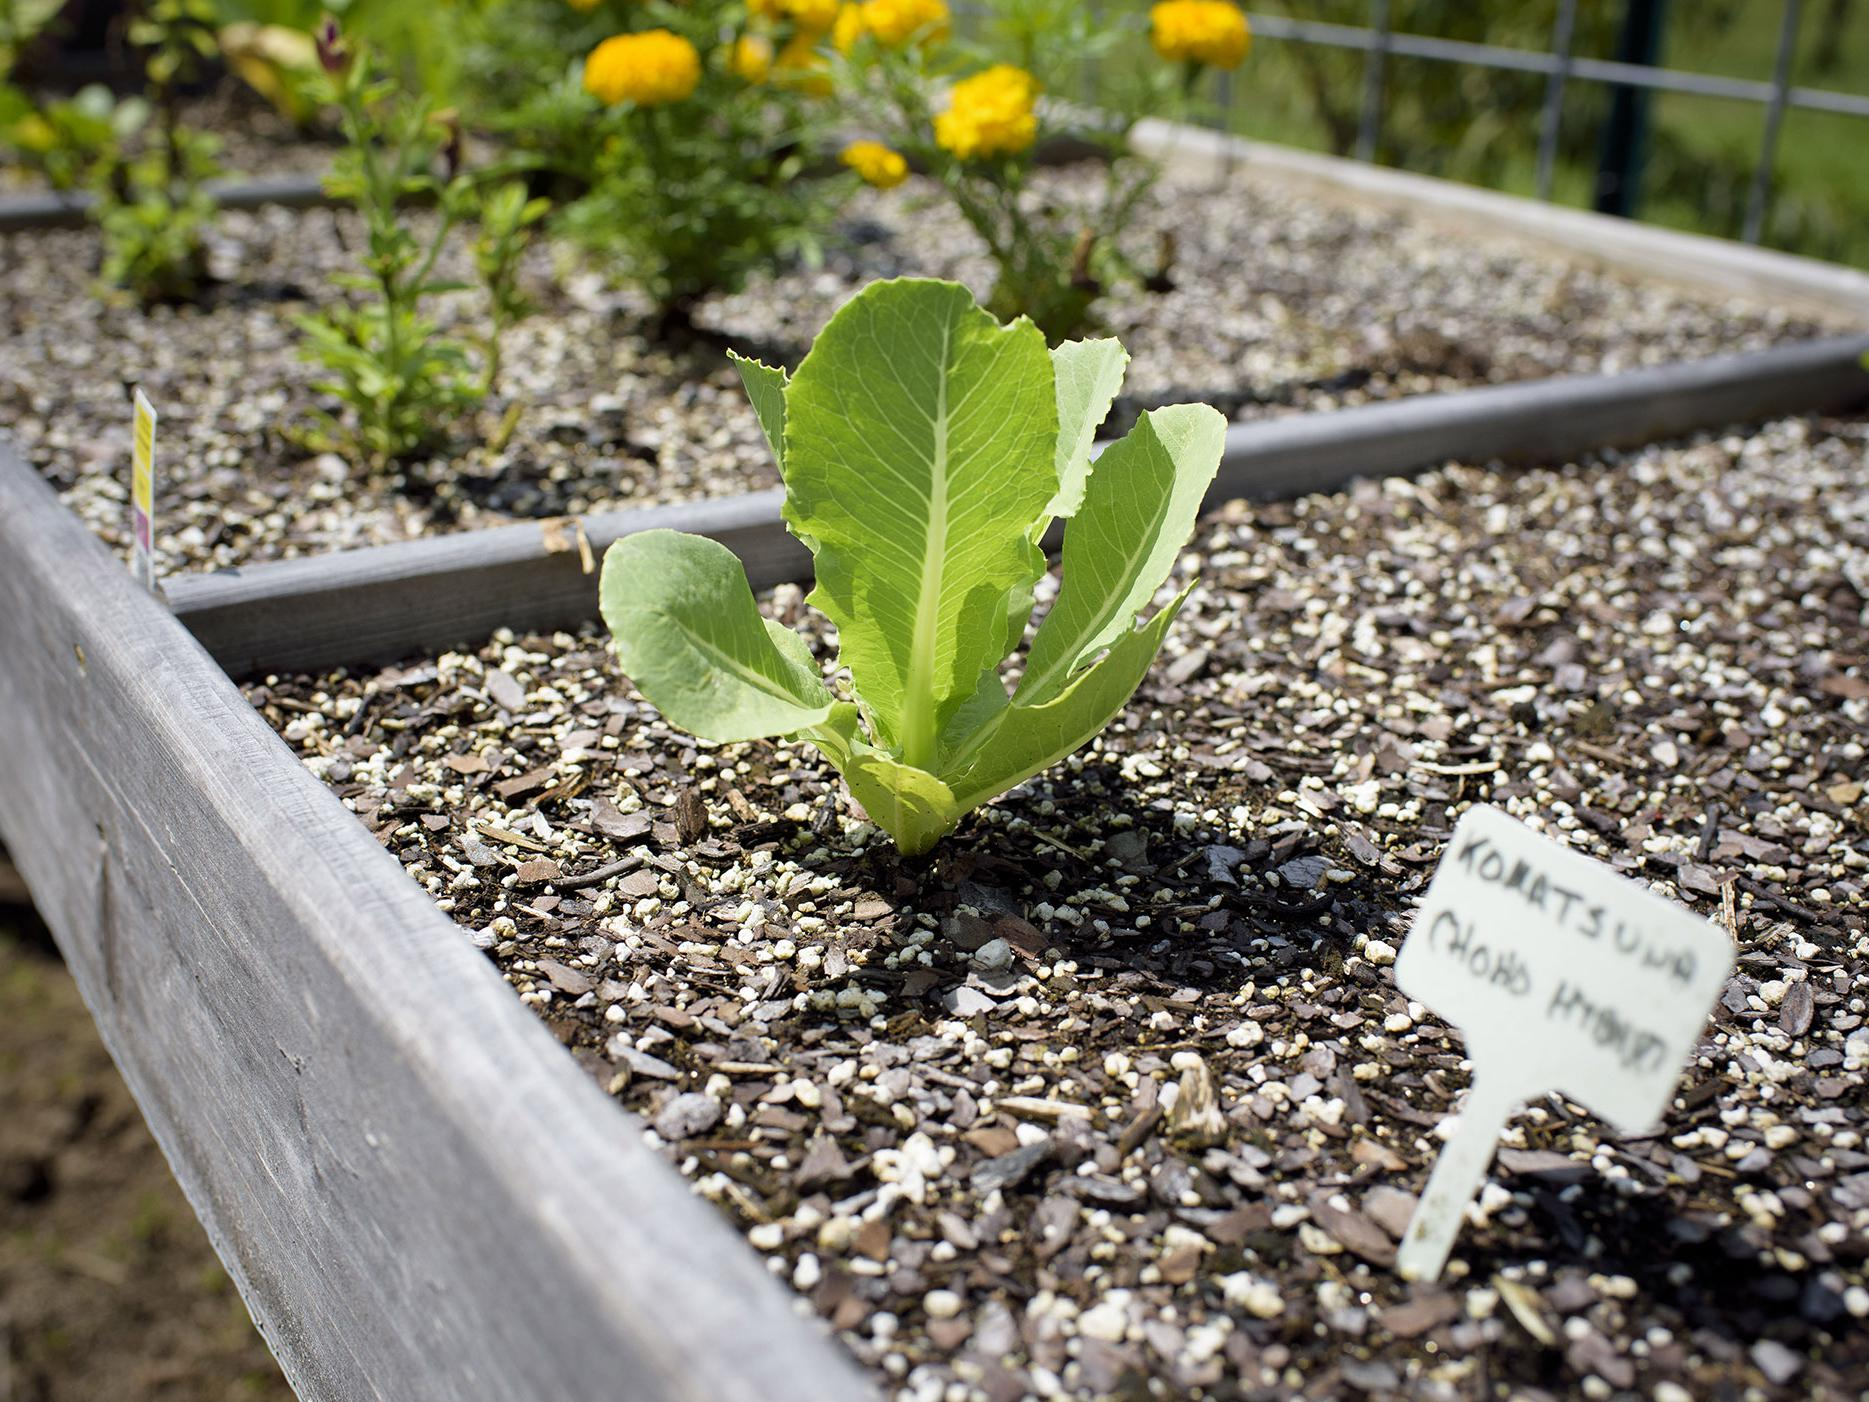 Close-up of a young leafy green vegetable plant growing in a salad table with other herbs and marigolds.